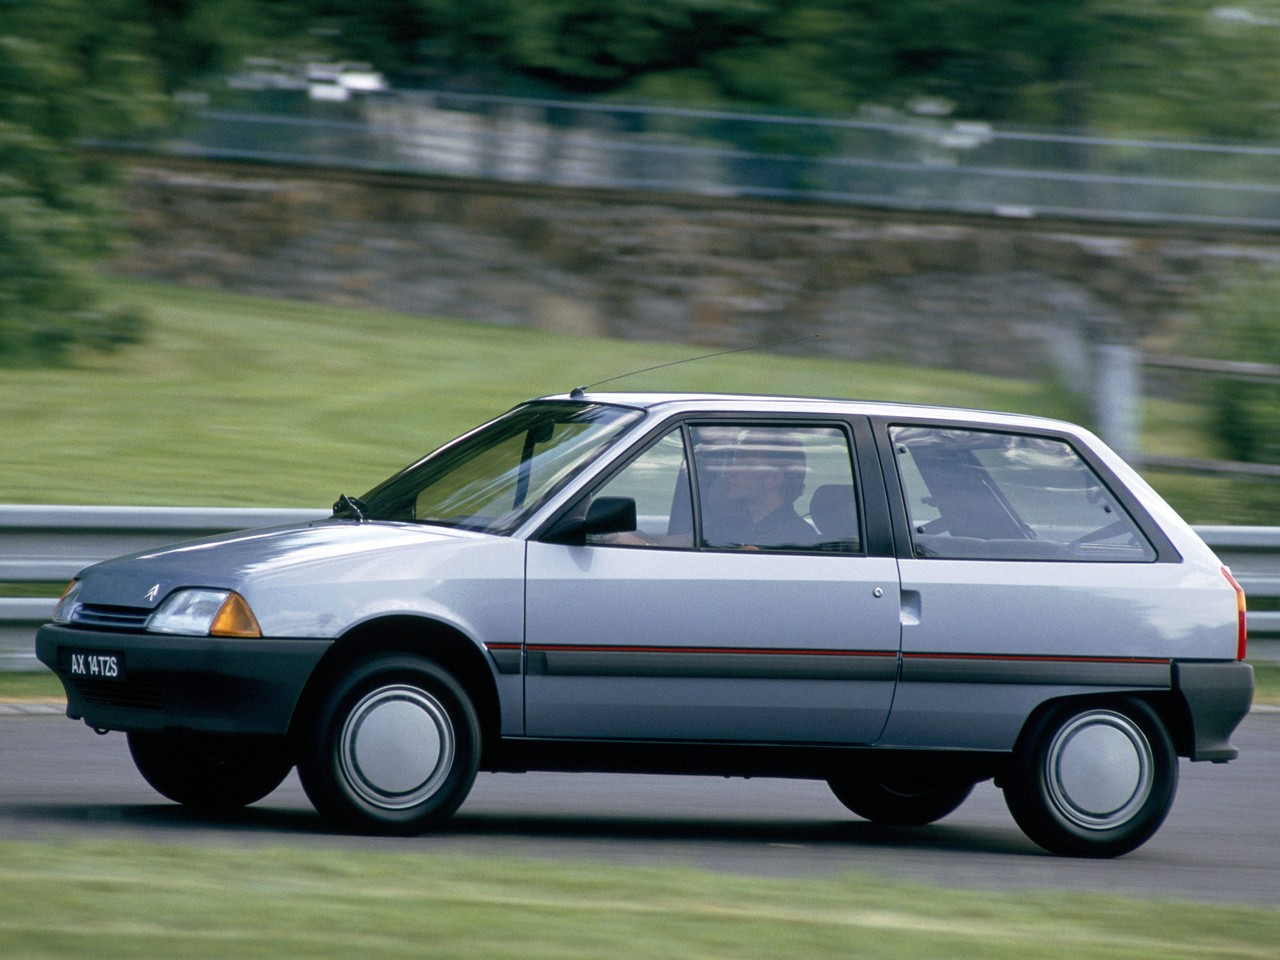 CITROEN AX 3 Doors - 1986, 1987, 1988, 1989, 1990, 1991 - autoevolution